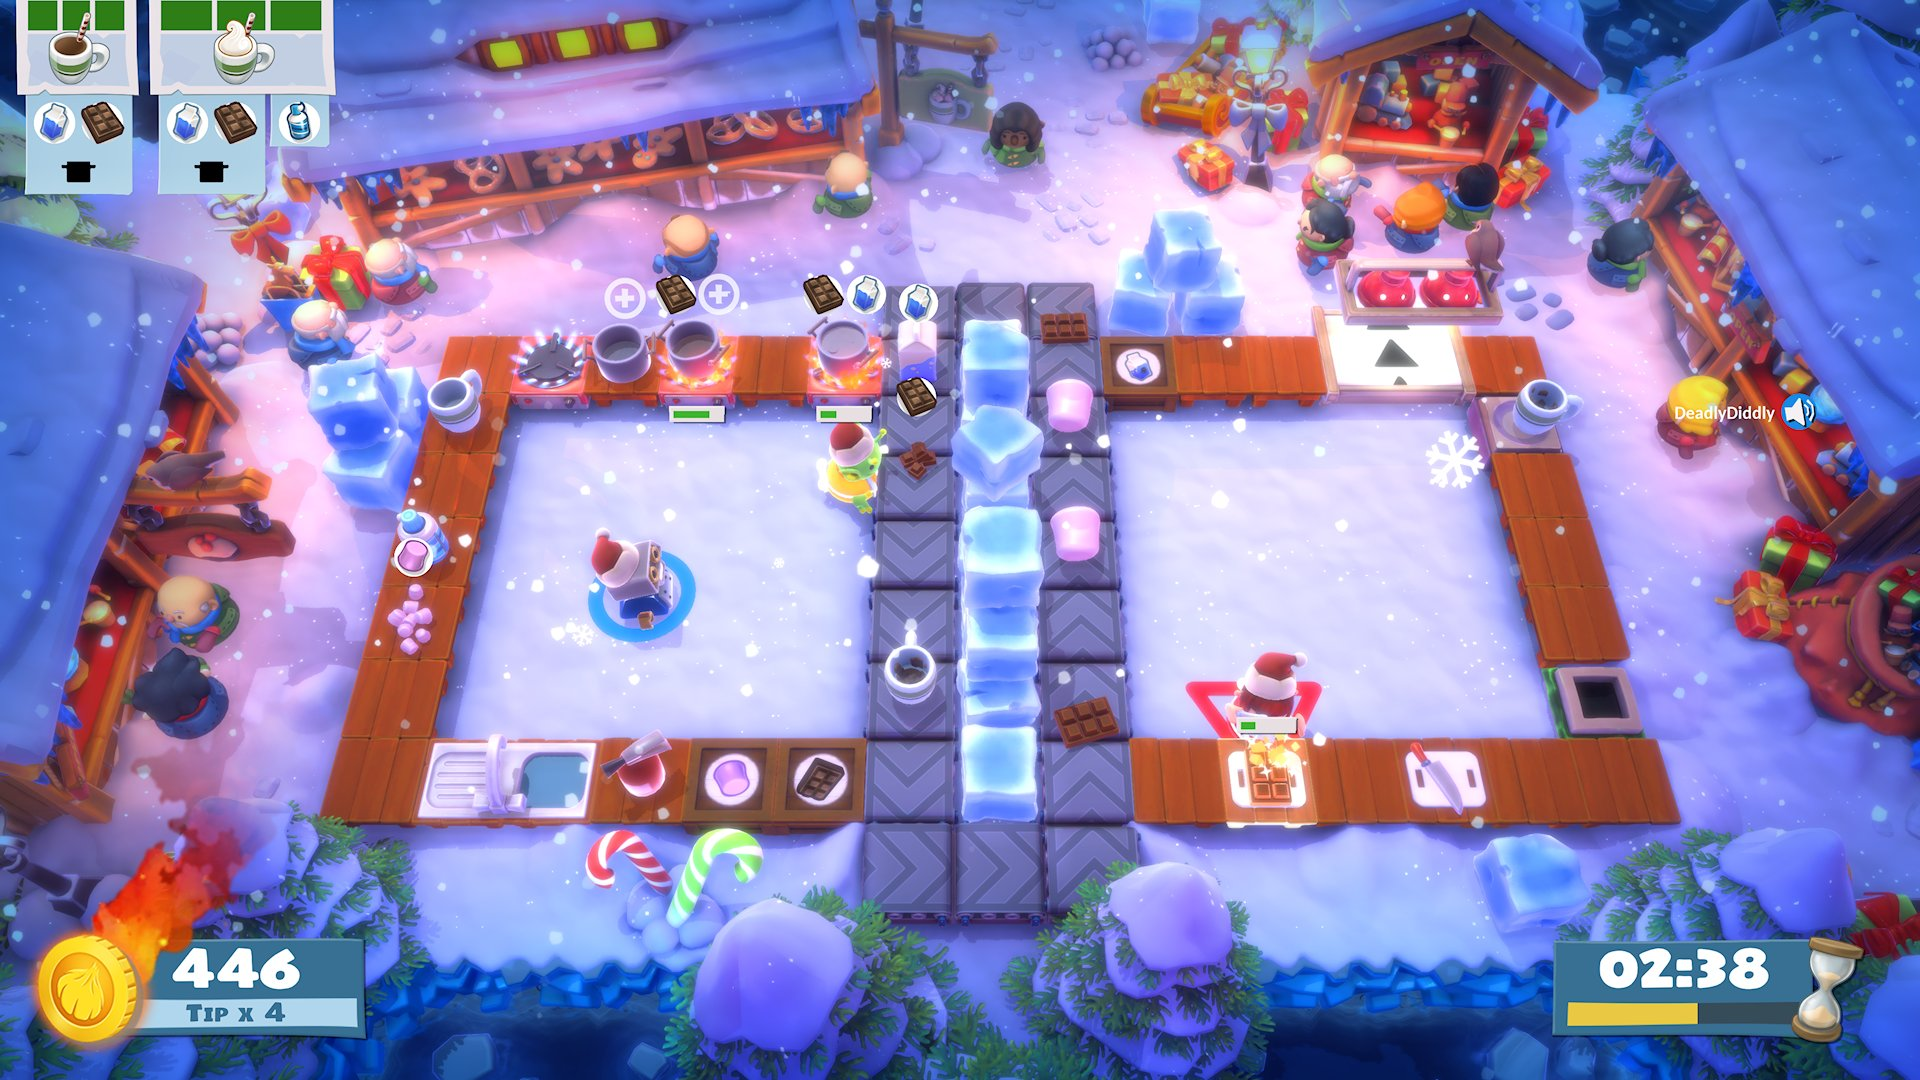 An icy kitchen from Overcooked! with cute, Christmas market vibes and snow falling gently.